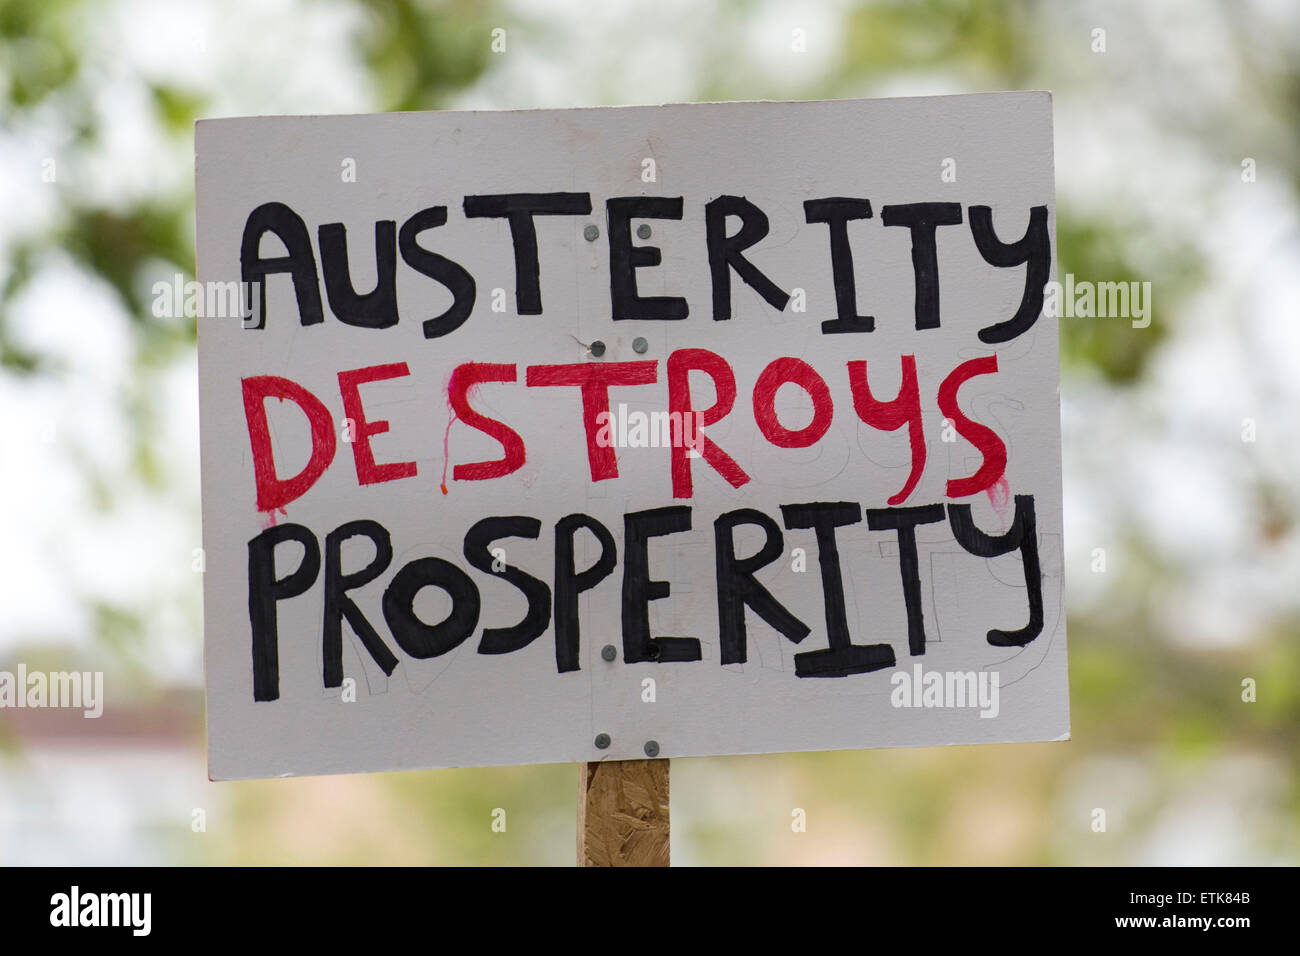 An anti-austerity sign that reads 'austerity destroys prosperity' seen at a protest against the Conservative - Stock Image